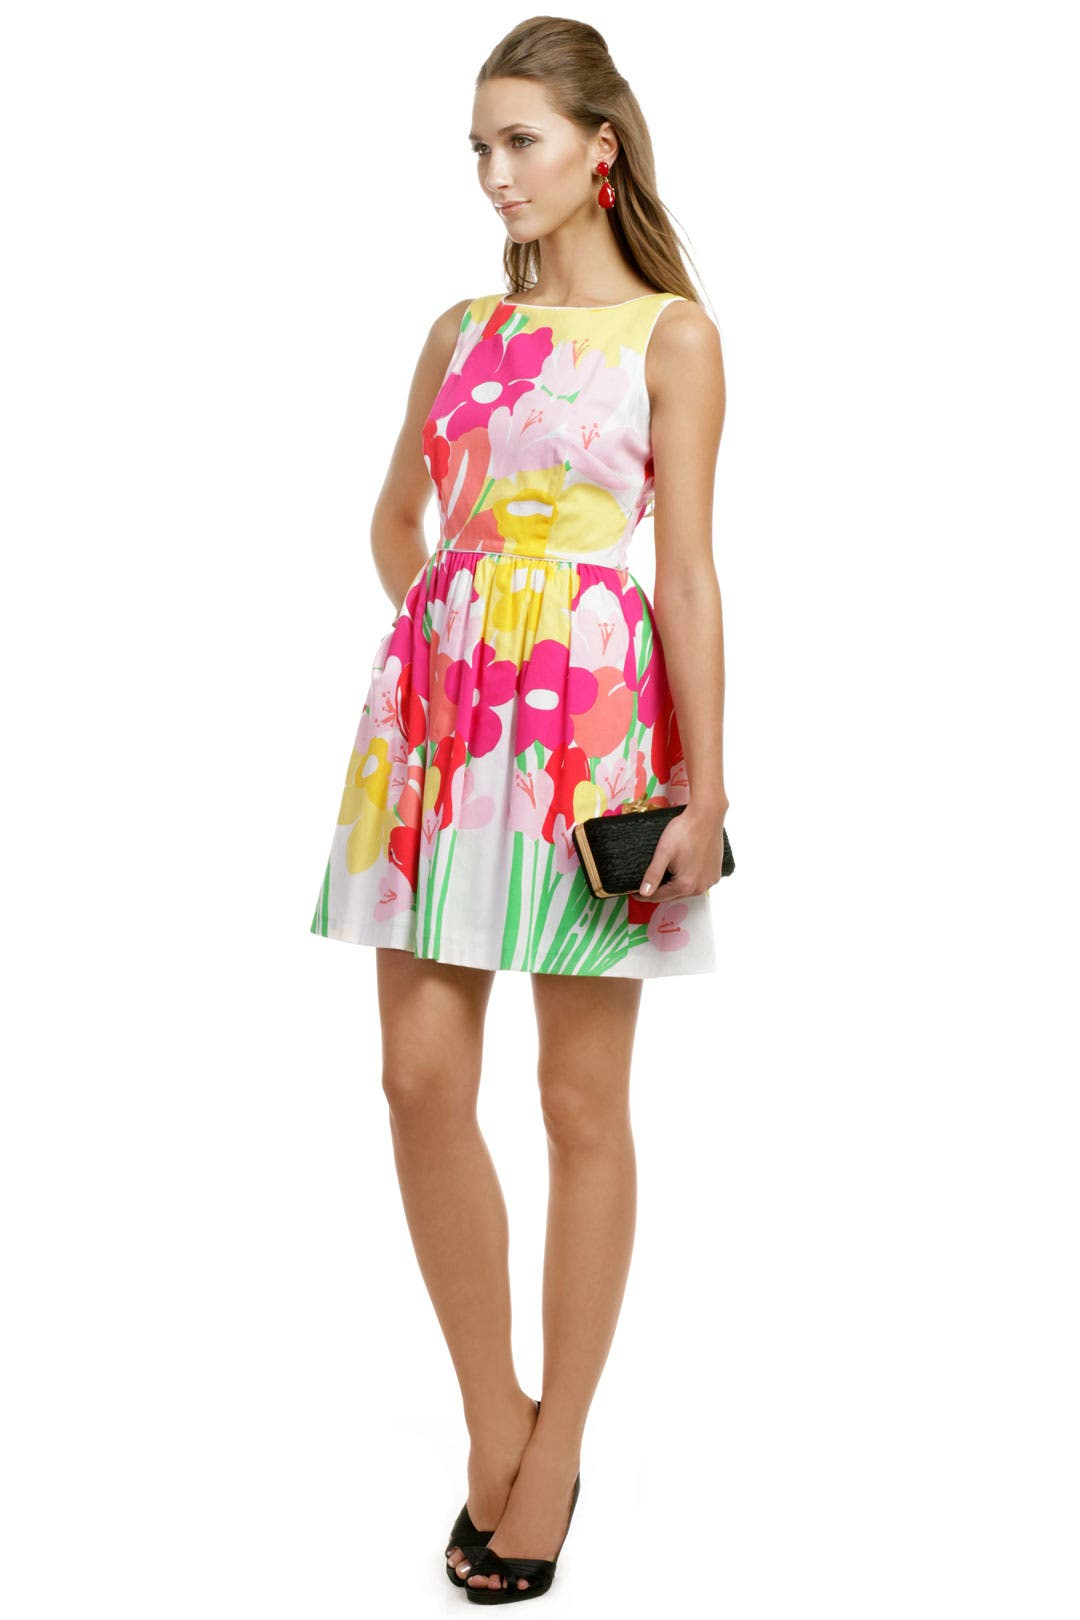 Lily Pulit Dresses On Sale become the Lilly P preppy